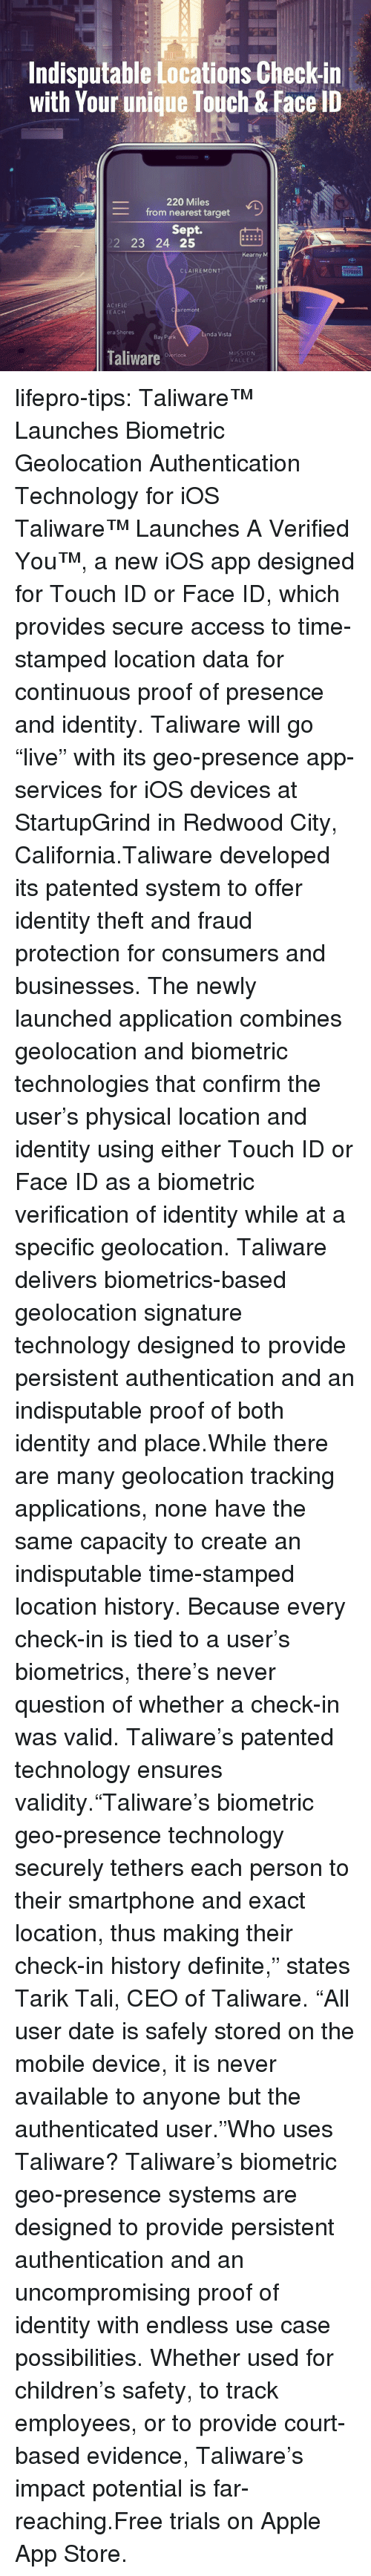 """nda: Aa  Indisputable Locations Check-in  with Your unique Touch & Face ID  220 Miles  from nearest target  Sept.  223 24 525t  Kearny M  CLAIREMONT  YPRB89  MYF  ACIFIC  EACH  C airemont  era Shores  nda Vista  Bay Park  Taliwarerict  MISSION  VALLEY lifepro-tips: Taliware™ Launches Biometric Geolocation Authentication Technology for iOS   Taliware™  Launches A Verified You™, a new iOS app designed for Touch ID or Face  ID, which provides secure access to time-stamped location data for  continuous proof of presence and identity. Taliware will go """"live"""" with  its geo-presence app-services for iOS devices at StartupGrind in Redwood  City, California.Taliware developed its patented system to  offer identity theft and fraud protection for consumers and businesses.  The newly launched application combines geolocation and biometric  technologies that confirm the user's physical location and identity  using either Touch ID or Face ID as a biometric verification of identity  while at a specific geolocation. Taliware delivers biometrics-based  geolocation signature technology designed to provide persistent  authentication and an indisputable proof of both identity and place.While  there are many geolocation tracking applications, none have the same  capacity to create an indisputable time-stamped location history.  Because every check-in is tied to a user's biometrics, there's never  question of whether a check-in was valid. Taliware's patented technology  ensures validity.""""Taliware's biometric geo-presence technology  securely tethers each person to their smartphone and exact location,  thus making their check-in history definite,"""" states Tarik Tali, CEO of  Taliware. """"All user date is safely stored on the mobile device, it is  never available to anyone but the authenticated user.""""Who uses  Taliware? Taliware's biometric geo-presence systems are designed to  provide persistent authentication and an uncompromising proof of  identity with endless use case possibilities. Whet"""